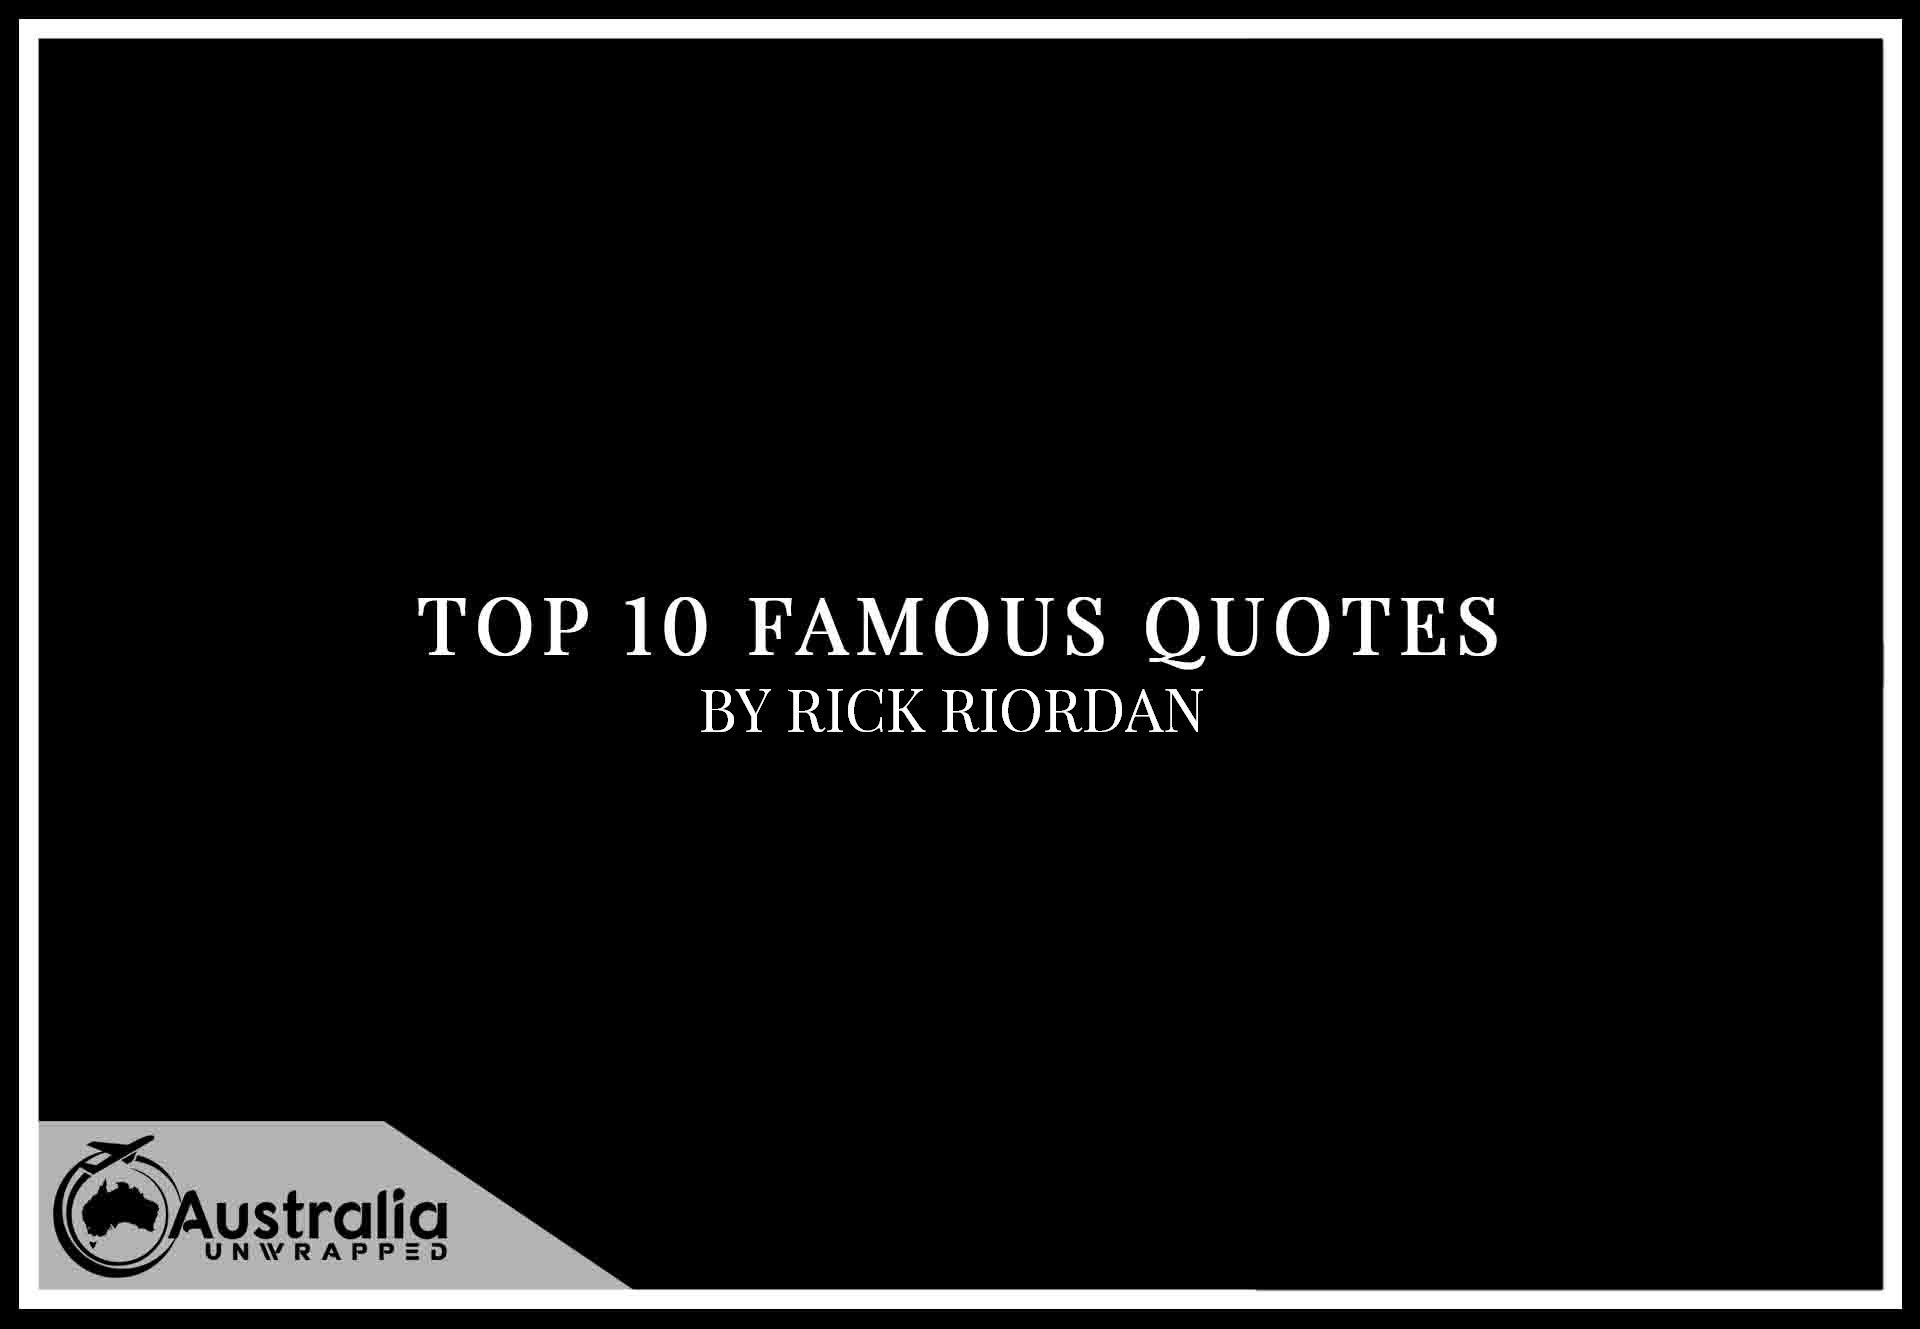 Top 10 Famous Quotes by Author Rick Riordan